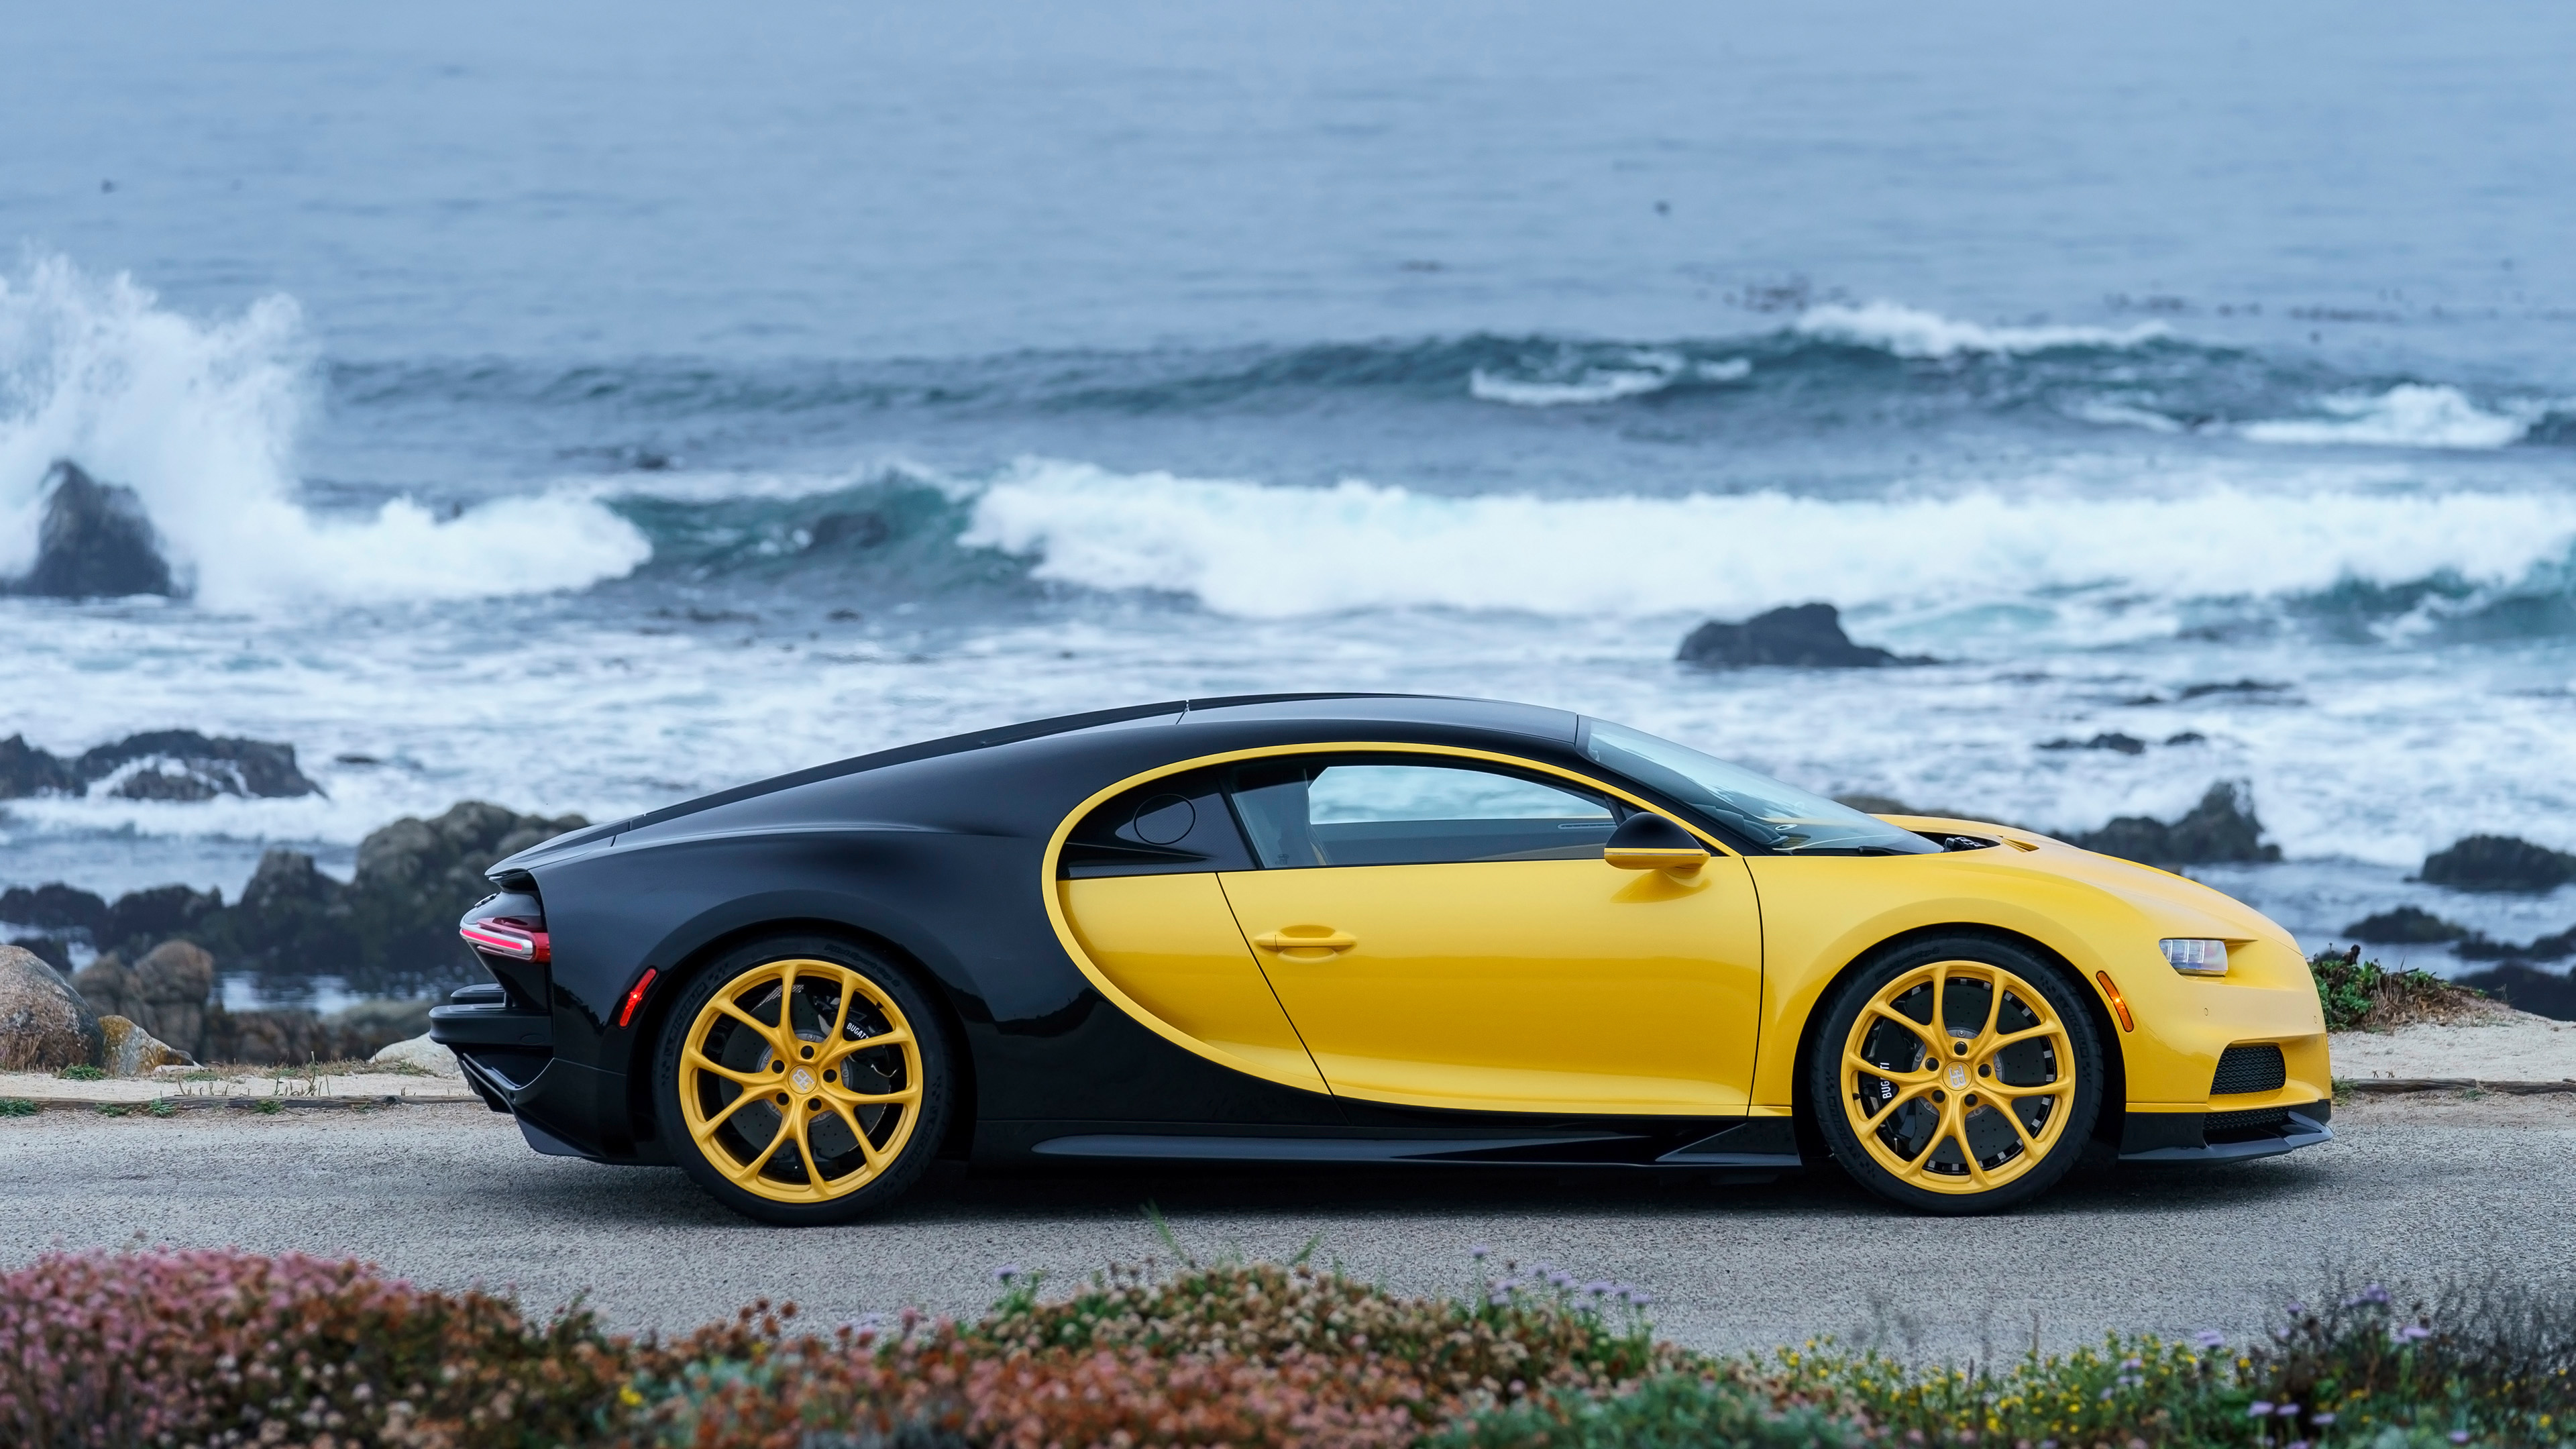 Free Download 2018 Bugatti Chiron Yellow And Black 4k 3 Wallpaper Hd 3840x2160 For Your Desktop Mobile Tablet Explore 79 Bugatti Chiron 2018 Wallpapers Bugatti Chiron 2018 Wallpapers Bugatti Wallpaper Bugatti Wallpapers